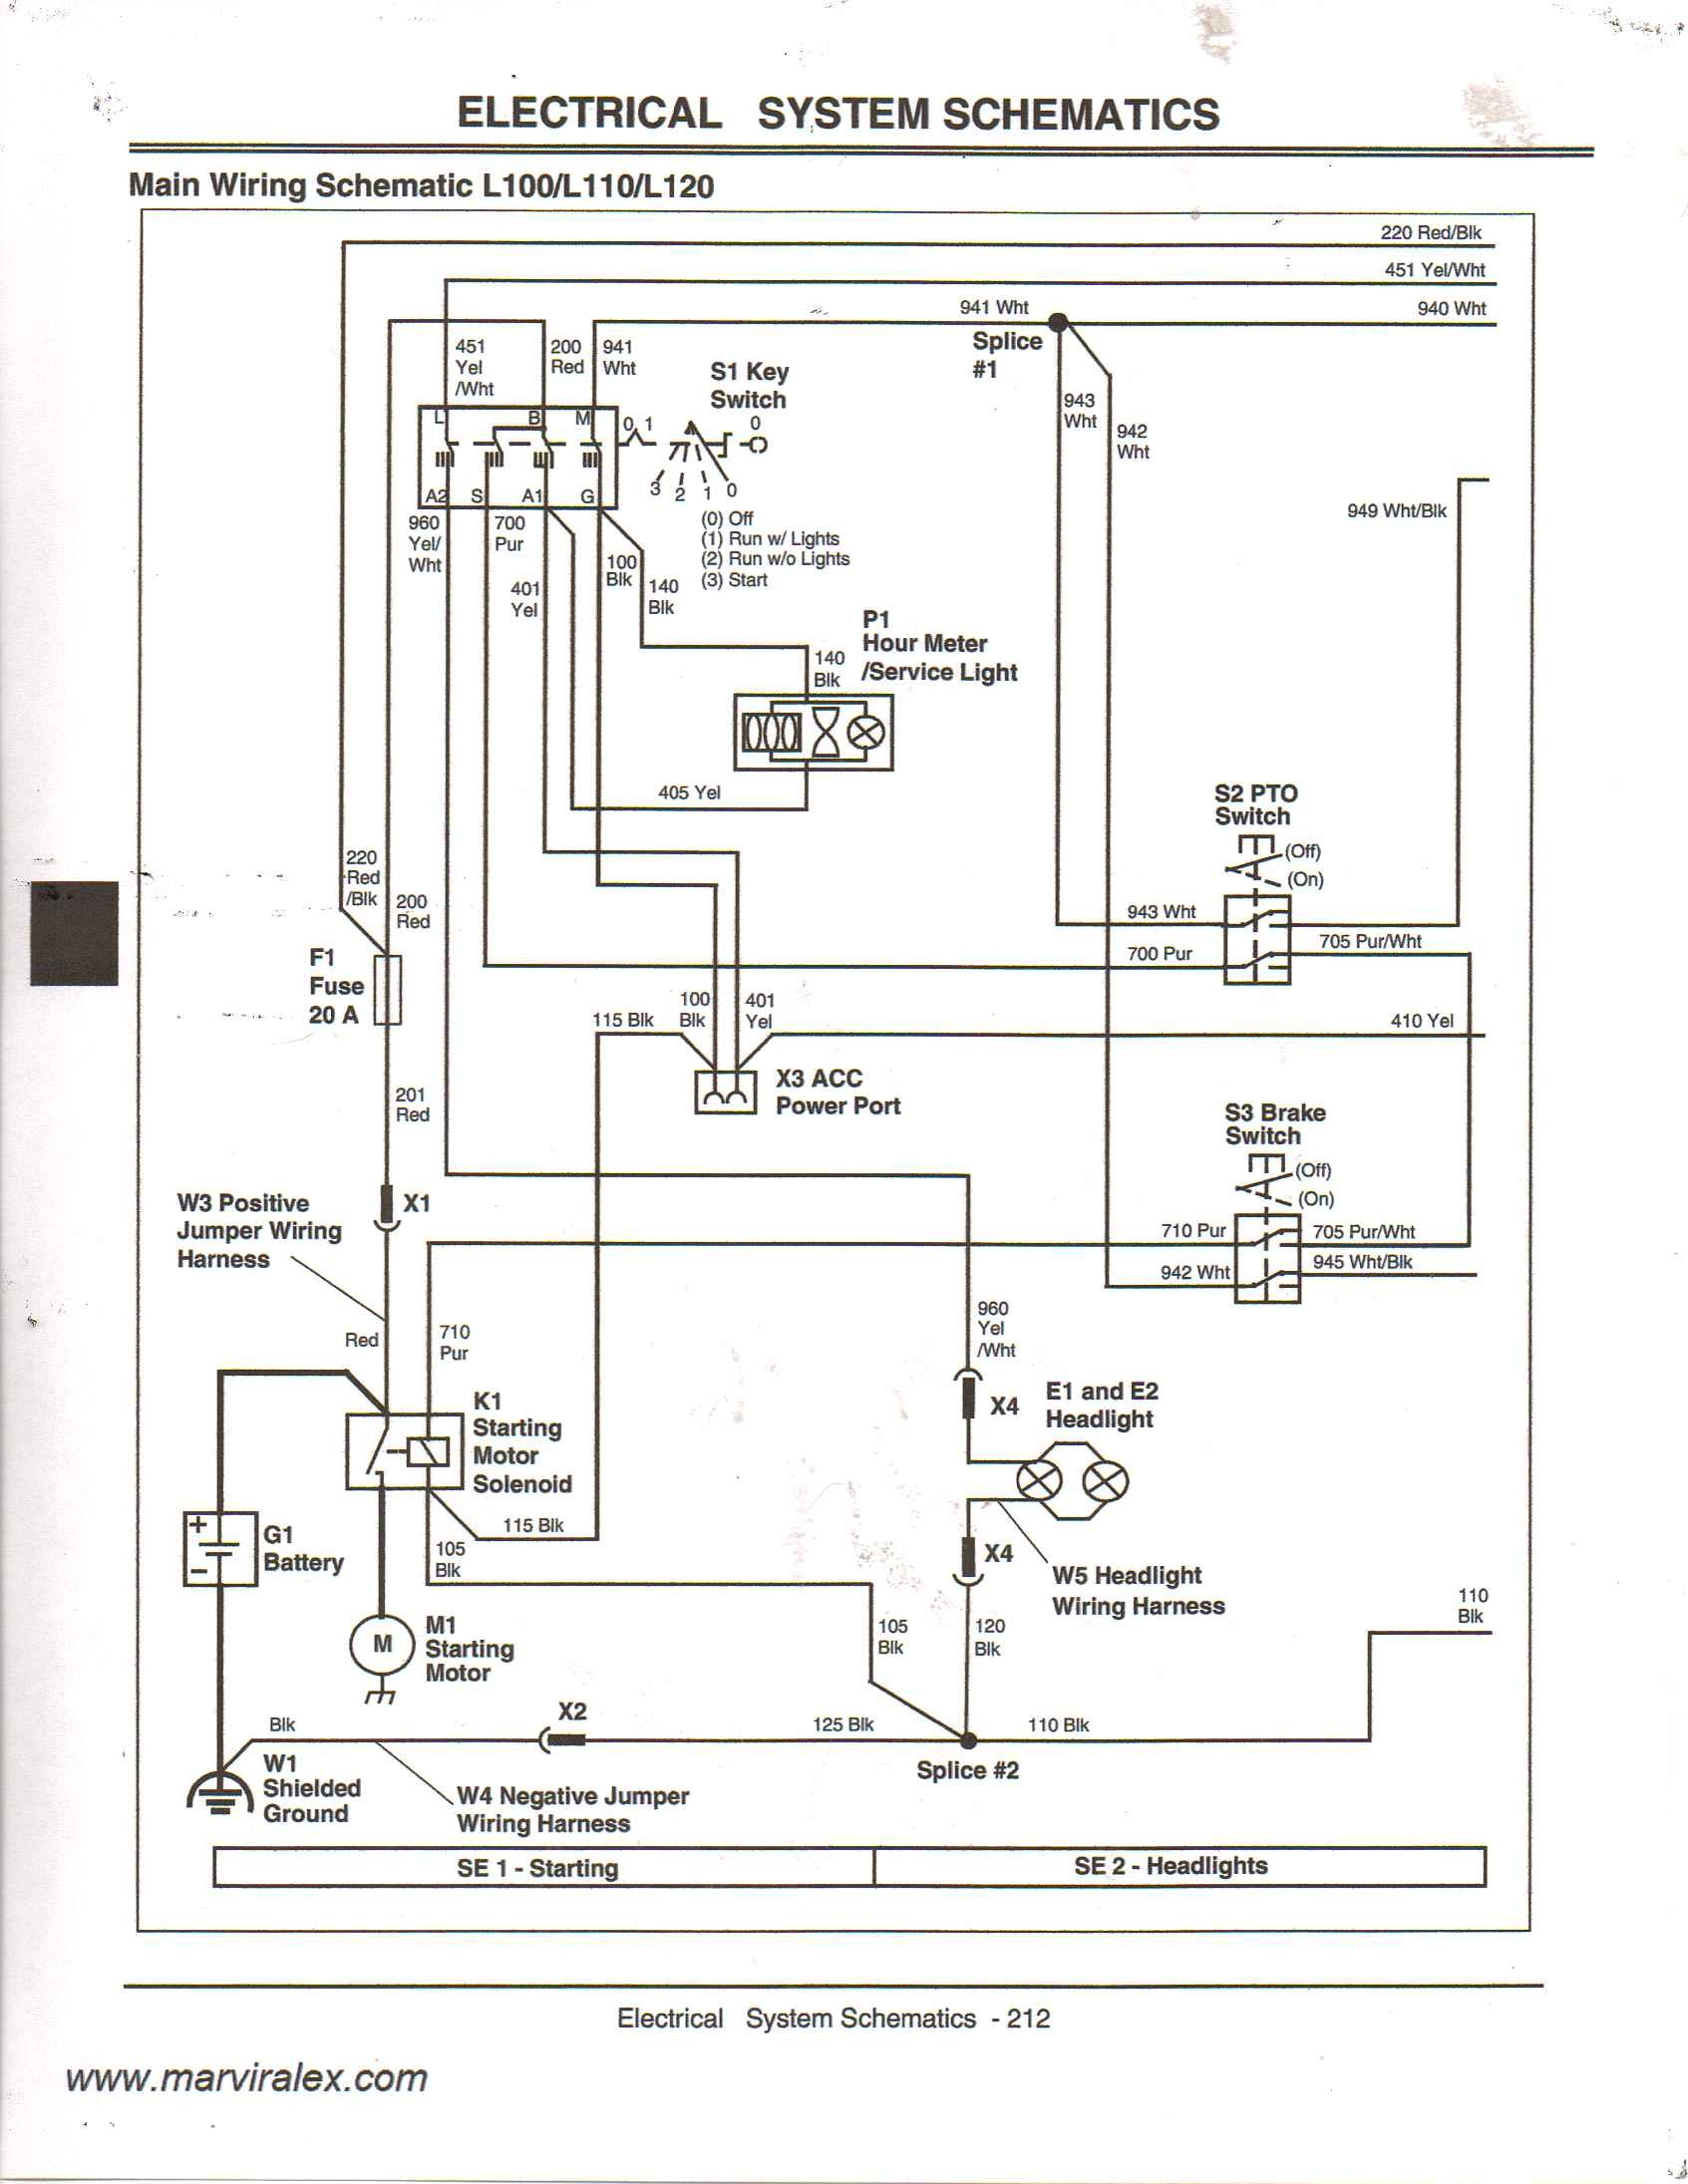 [DHAV_9290]  DIAGRAM] John Deere 1050 Wiring Diagram FULL Version HD Quality Wiring  Diagram - 160975.VINCENTESCRIVE.FR | John Deere 1050 Wiring Diagram |  | vincentescrive.fr